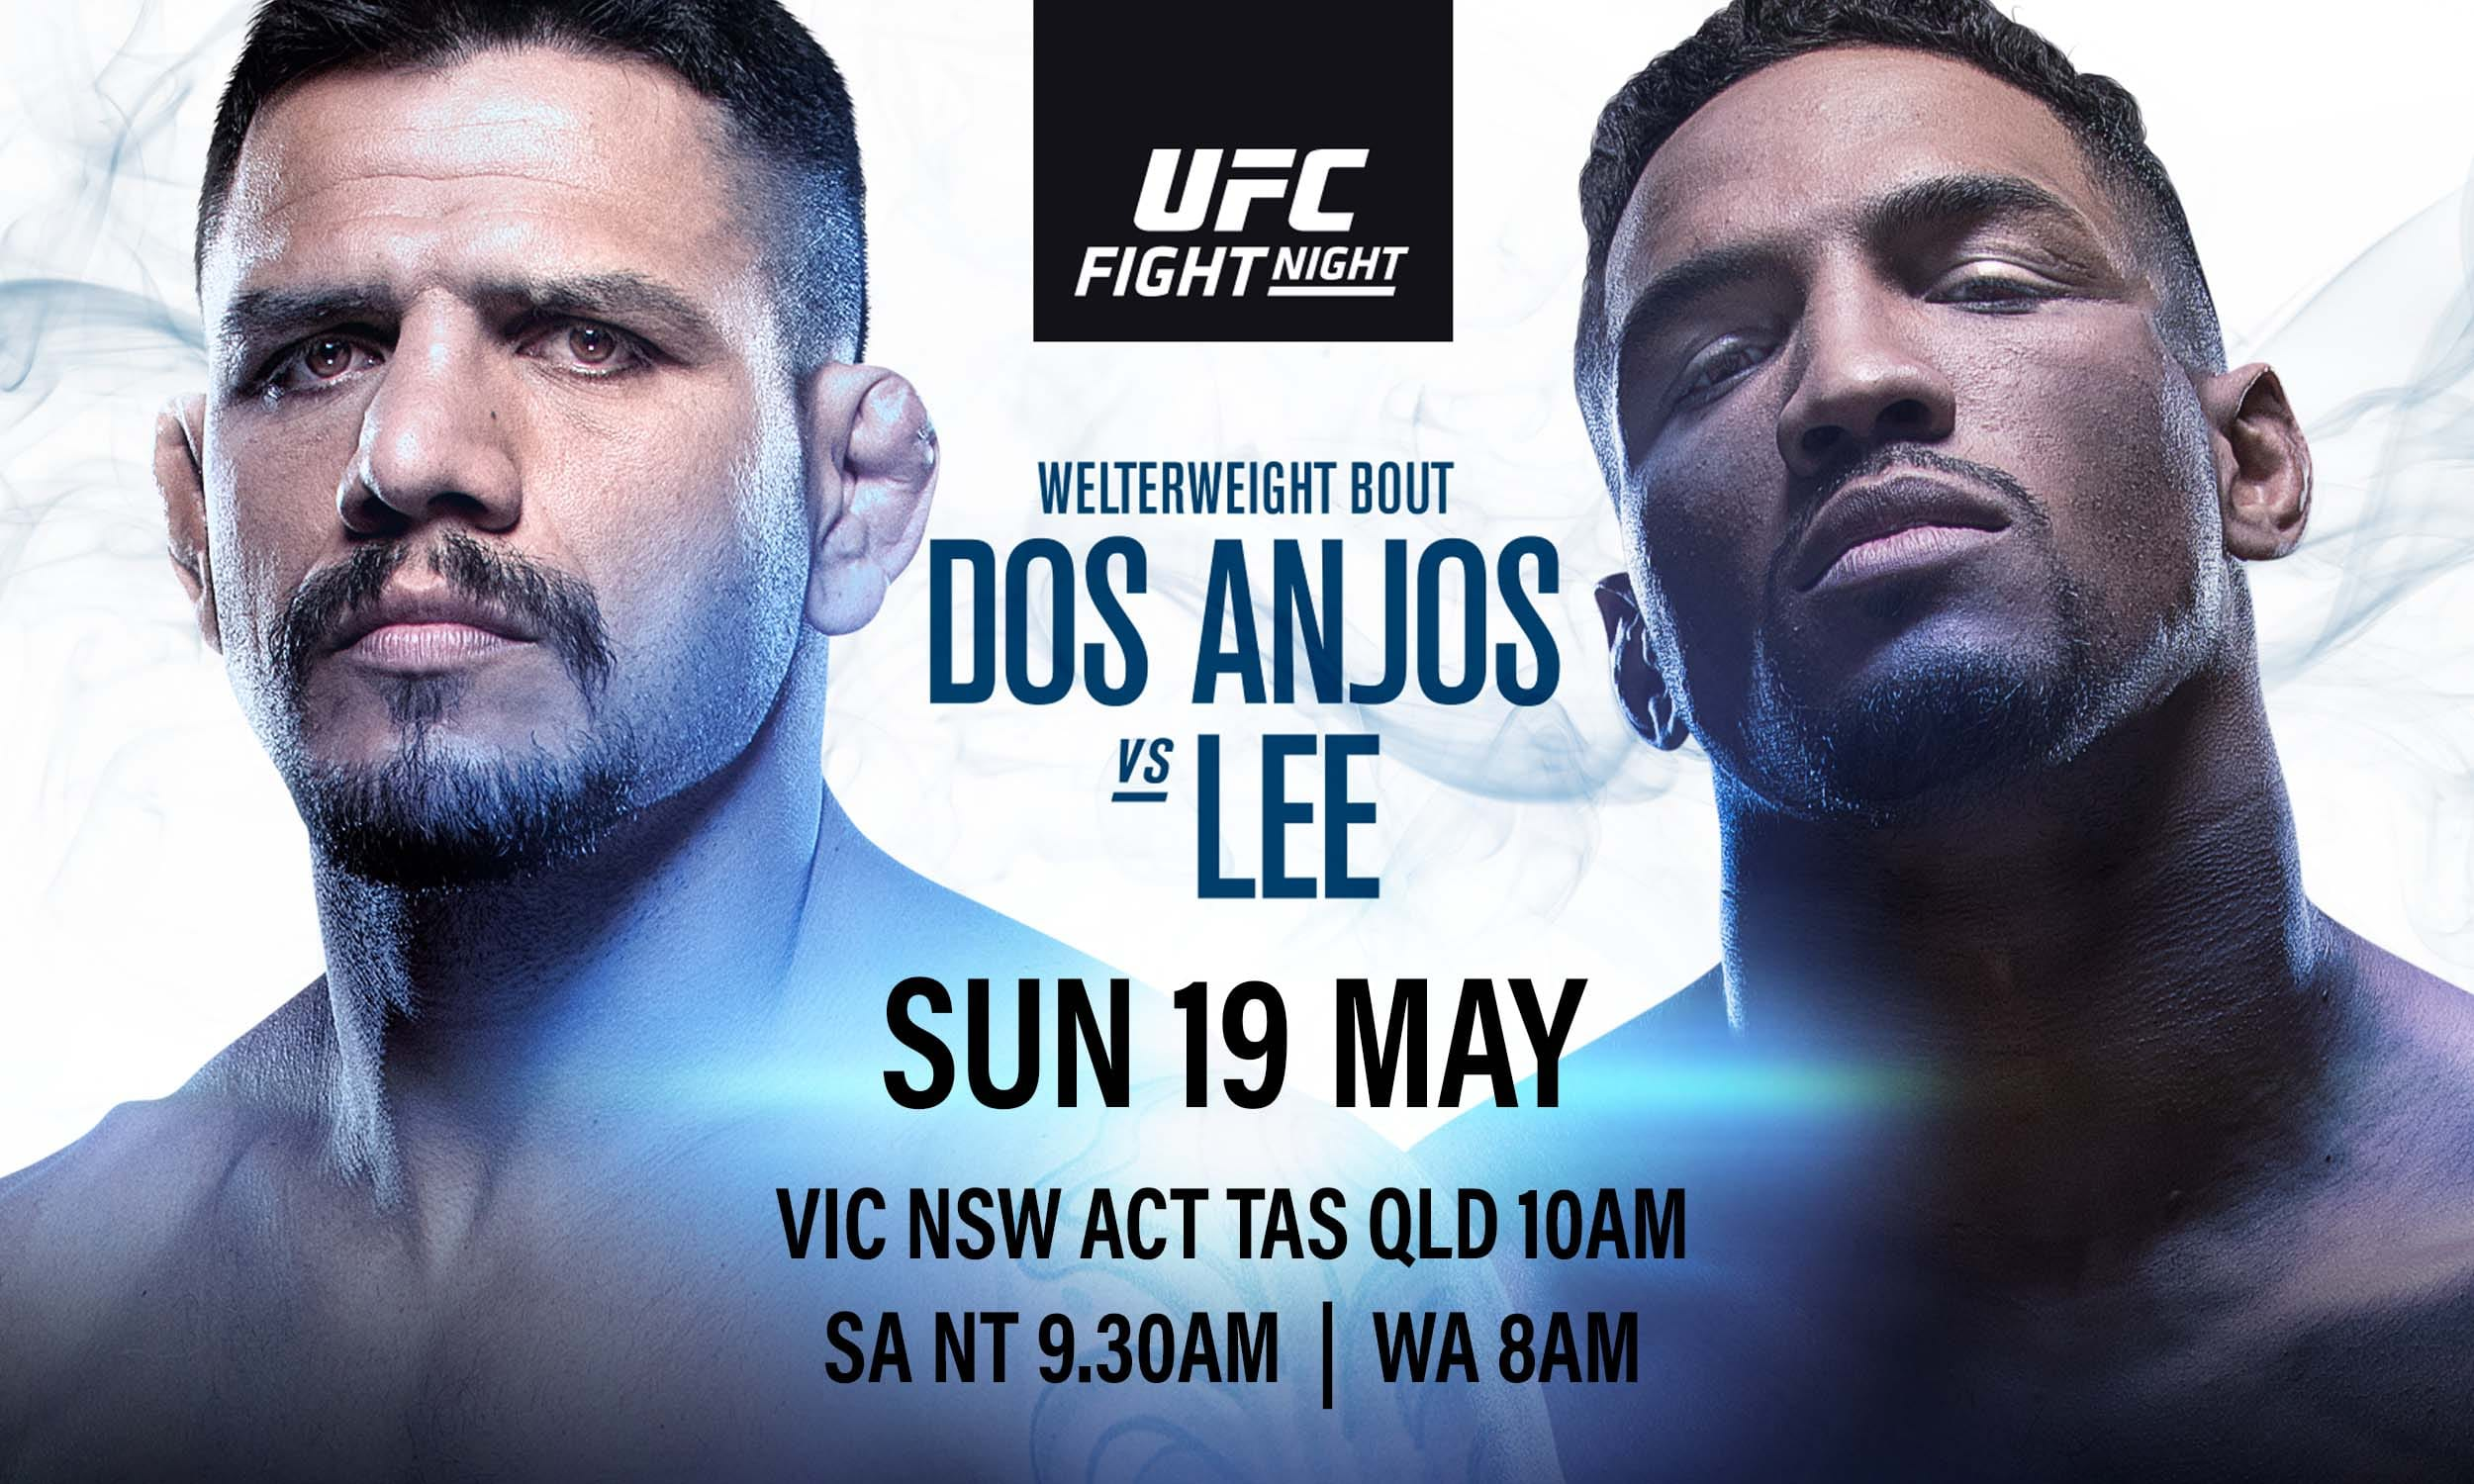 UFC FIGHT NIGHT: RAFAEL DOS ANJOS VS KEVIN LEE | Better at